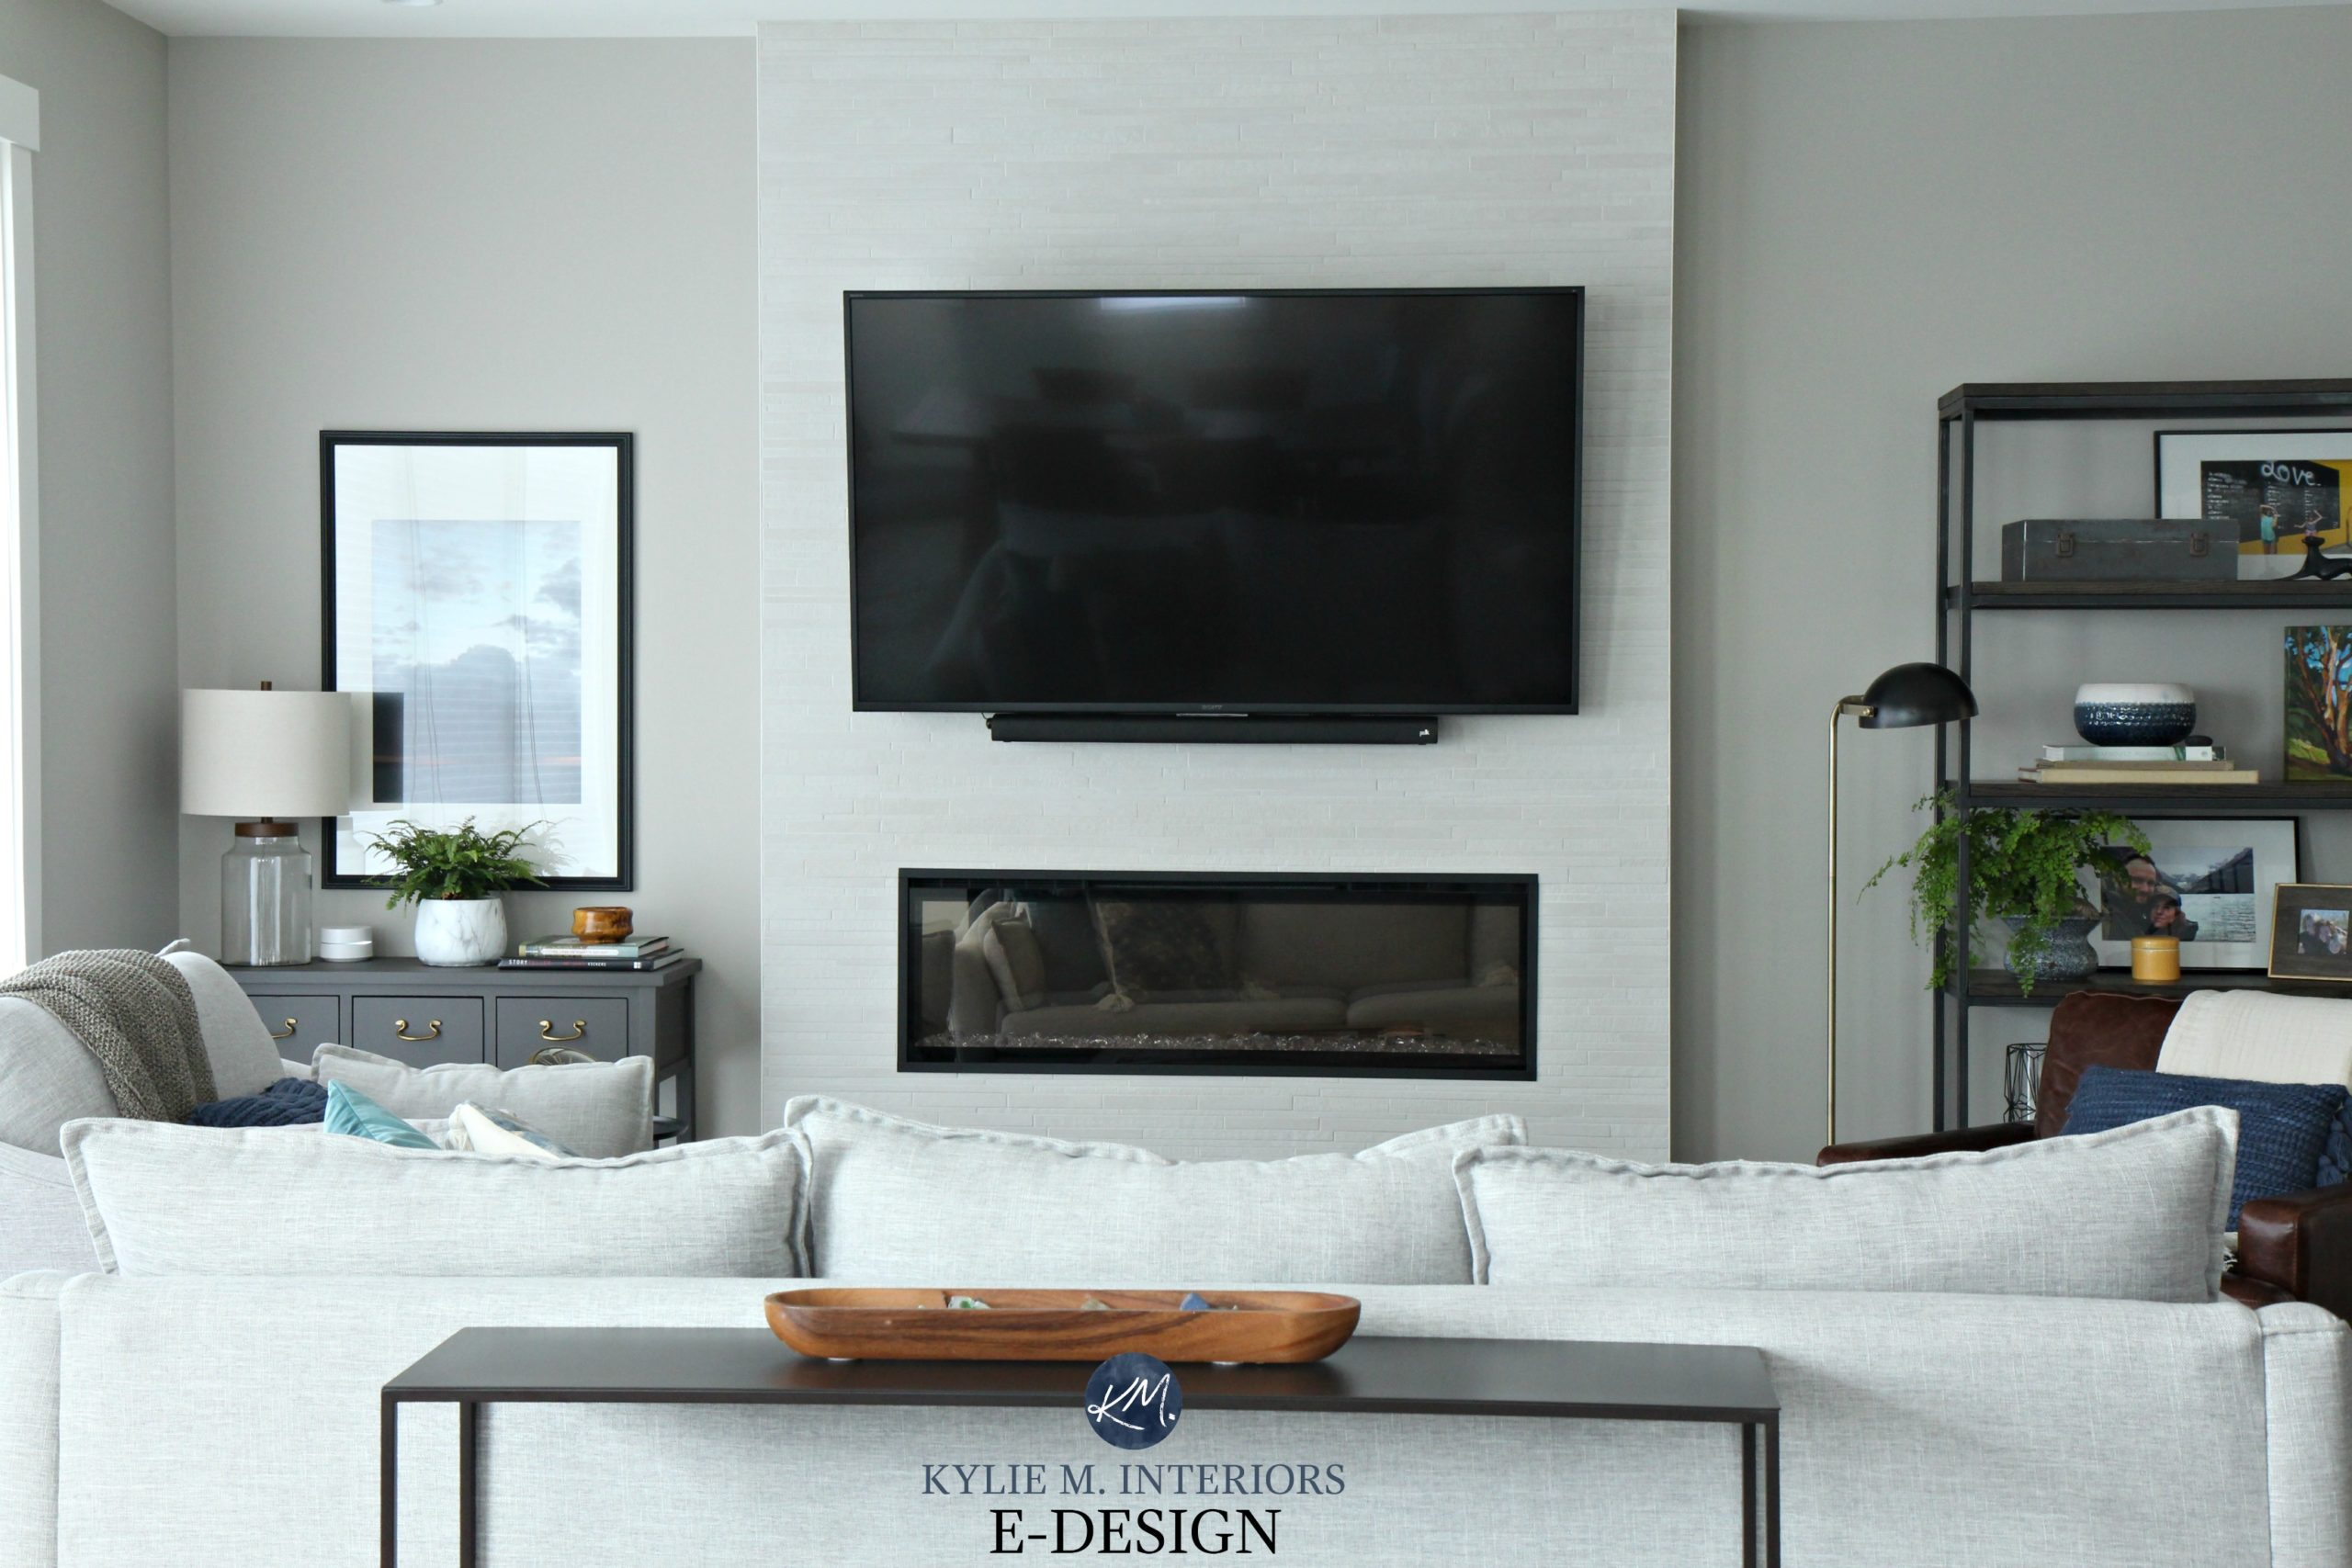 living room fireplace and tv interior design soothing paint colors for sherwin williams collonade gray in kylie m interiors edesign above electric with